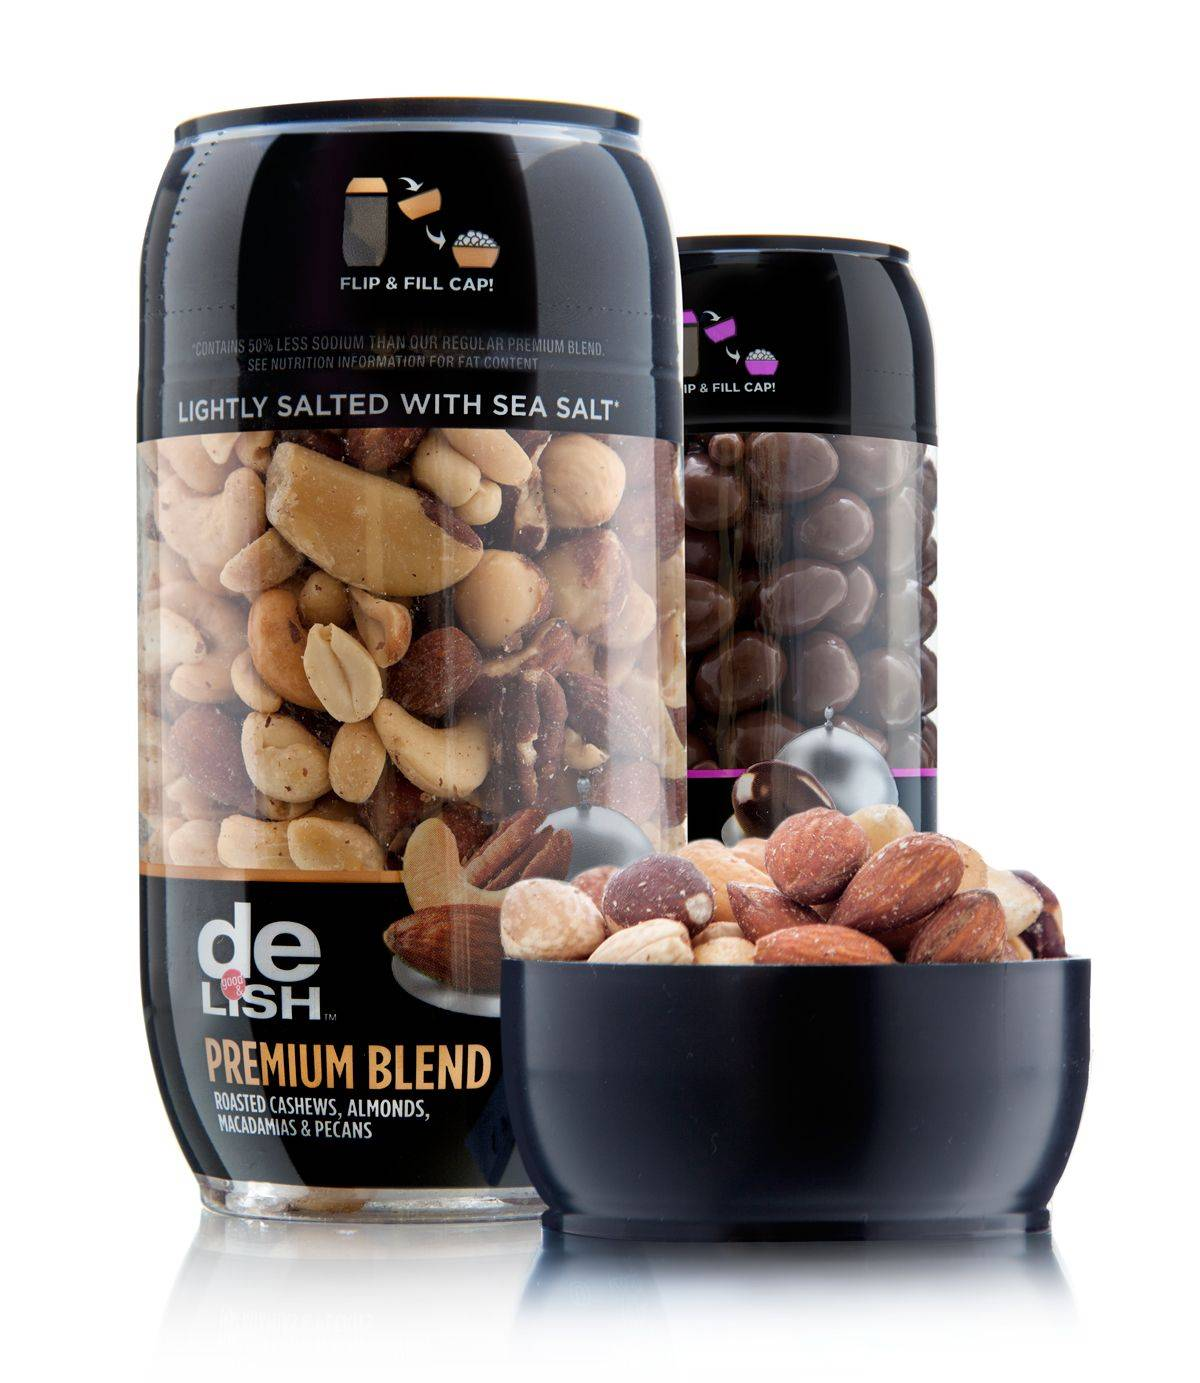 Walgreens Good & Delish Nuts